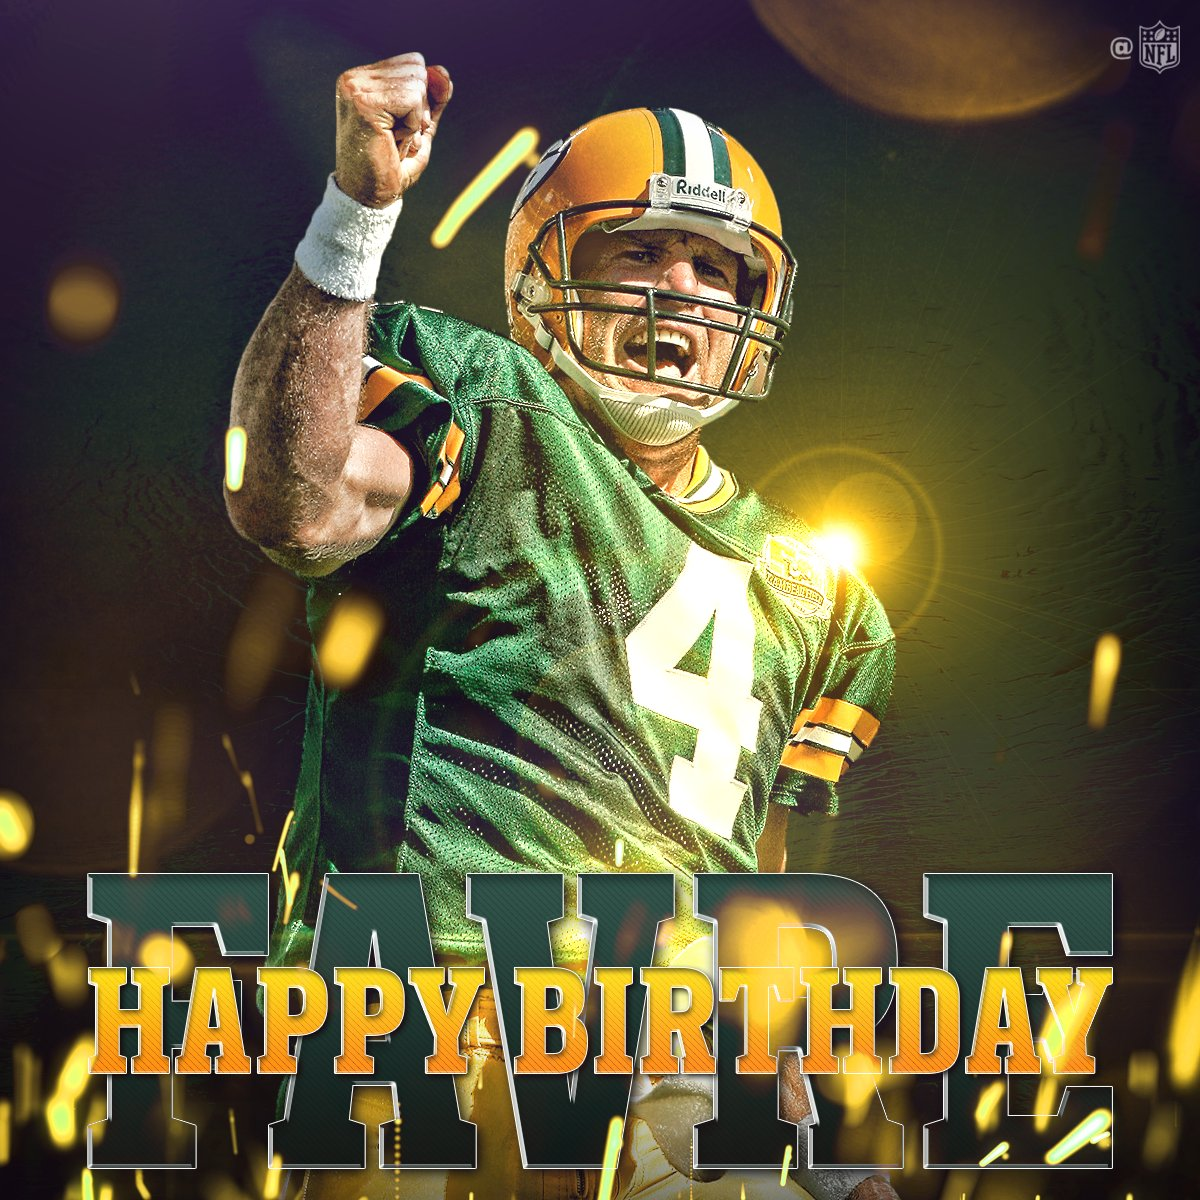 HAPPY BIRTHDAY, @Favre4Official! ������ https://t.co/jD4dHbrZuS